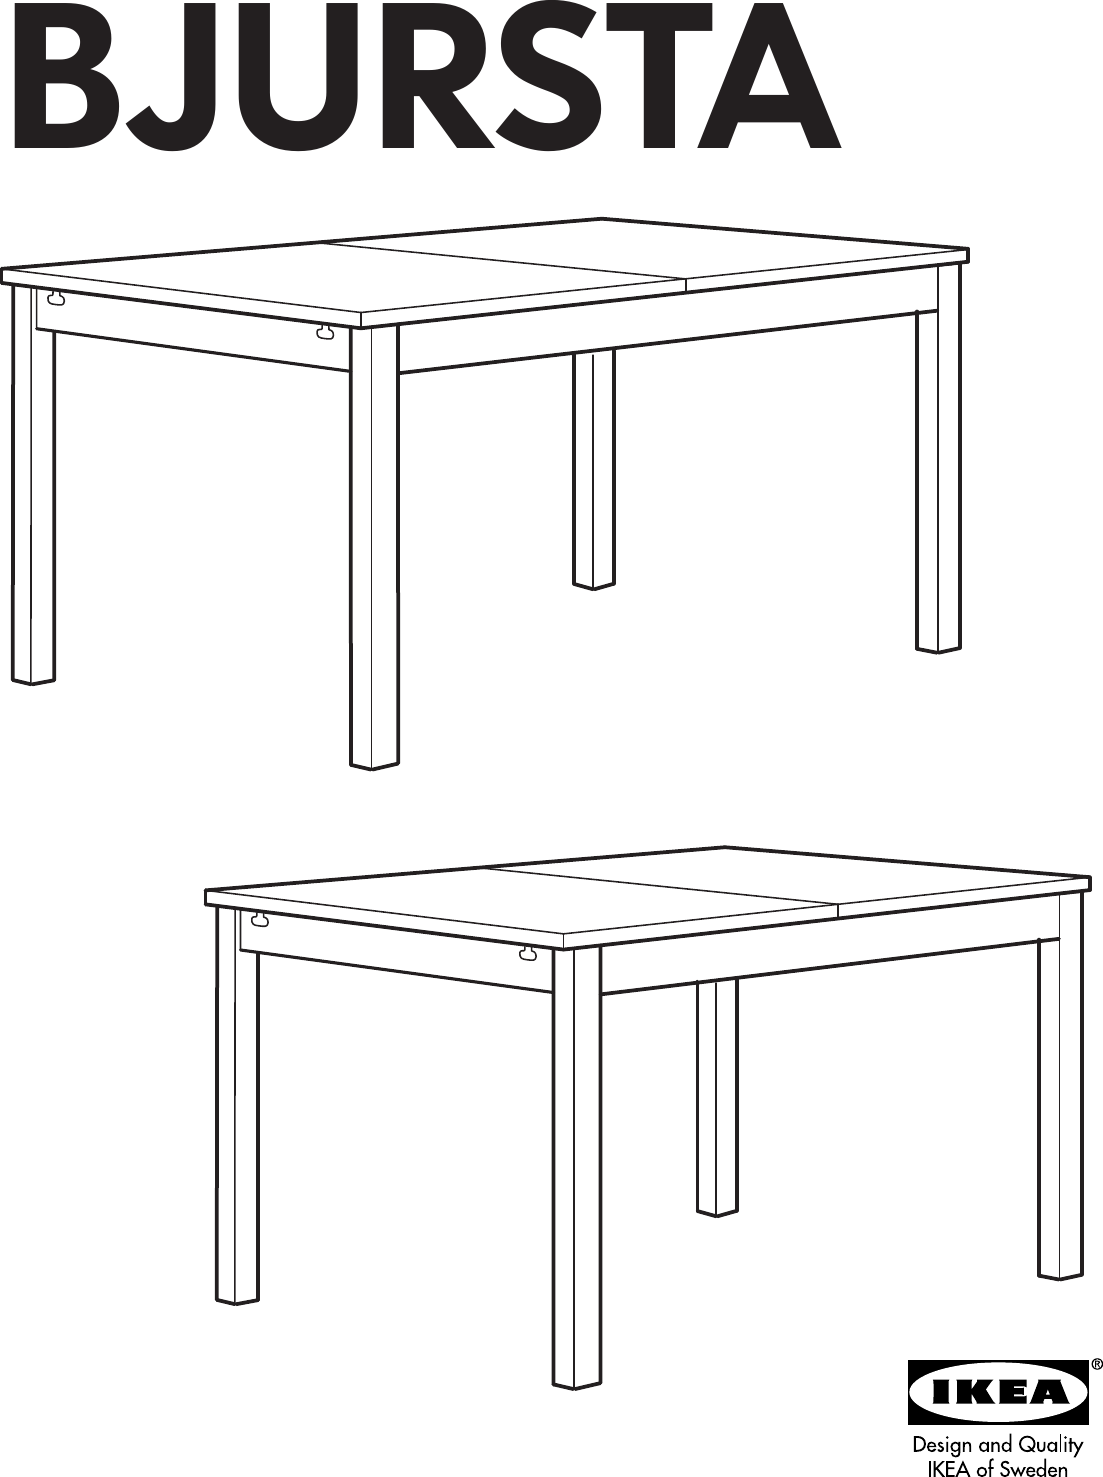 Ikea Bjursta Extendable Dining Table 69 86 102 X37 Assembly